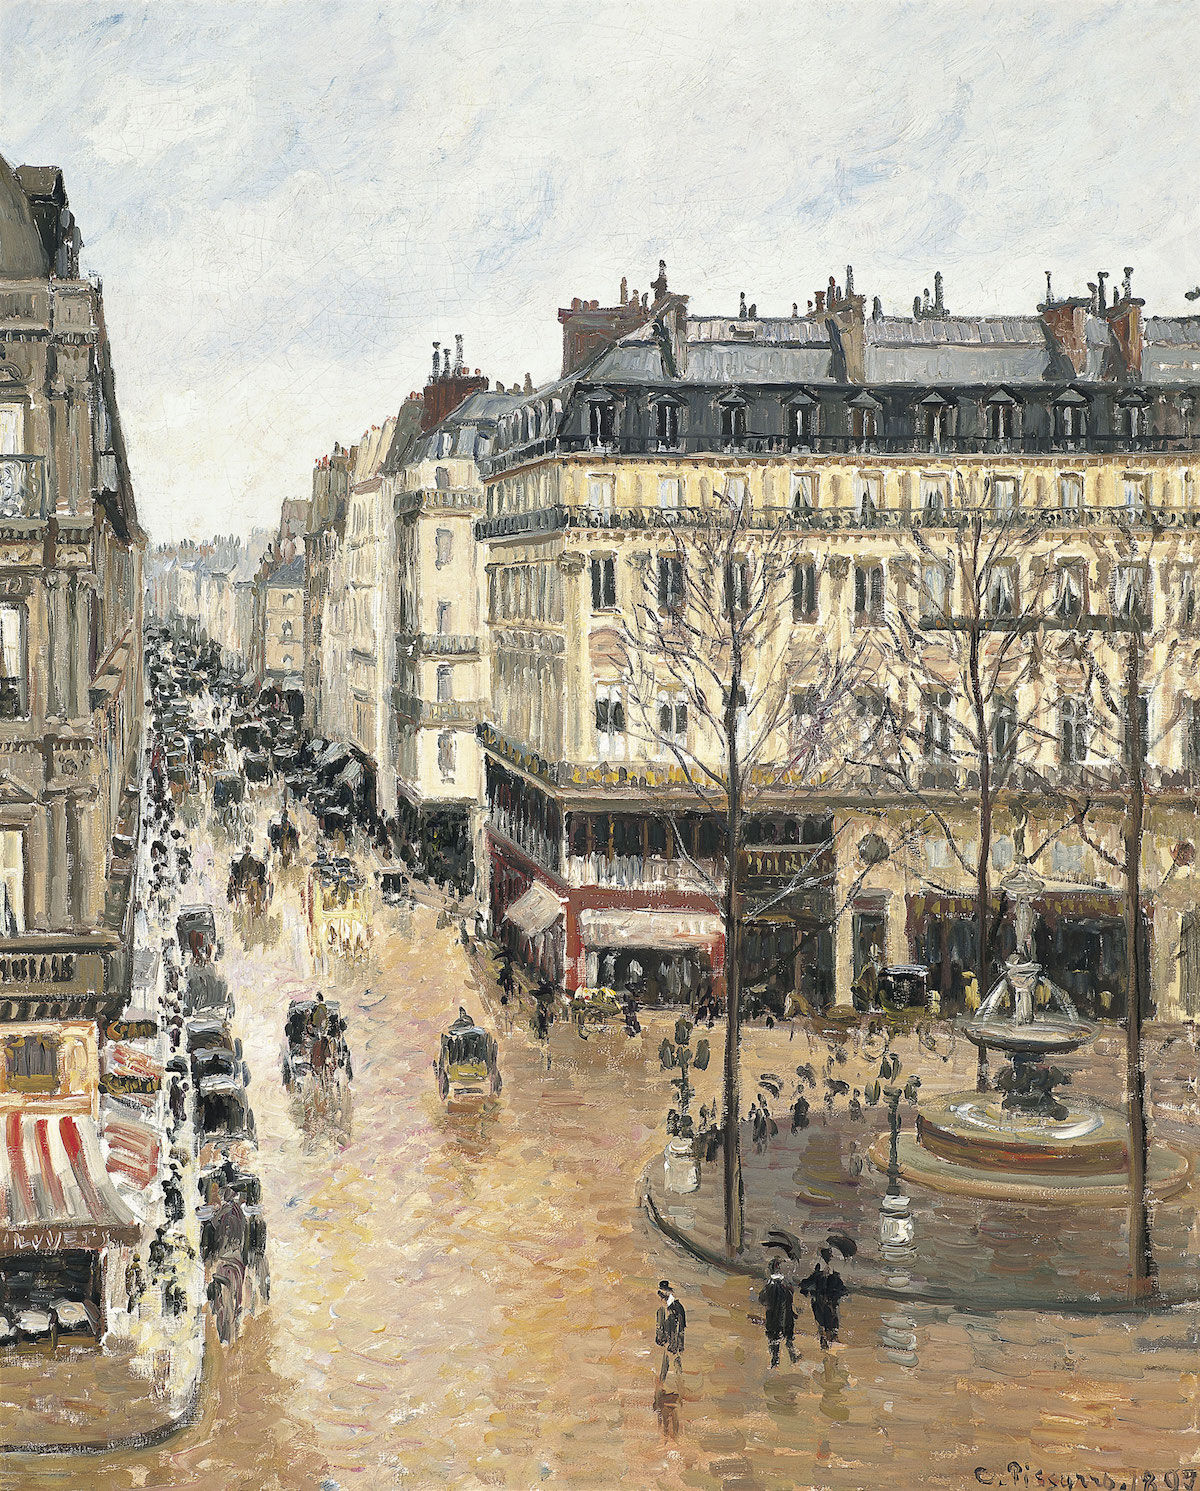 Camille Pissarro, Rue Saint-Honoré in the Afternoon. Effect of Rain, 1897. Via Wikimedia Commons.